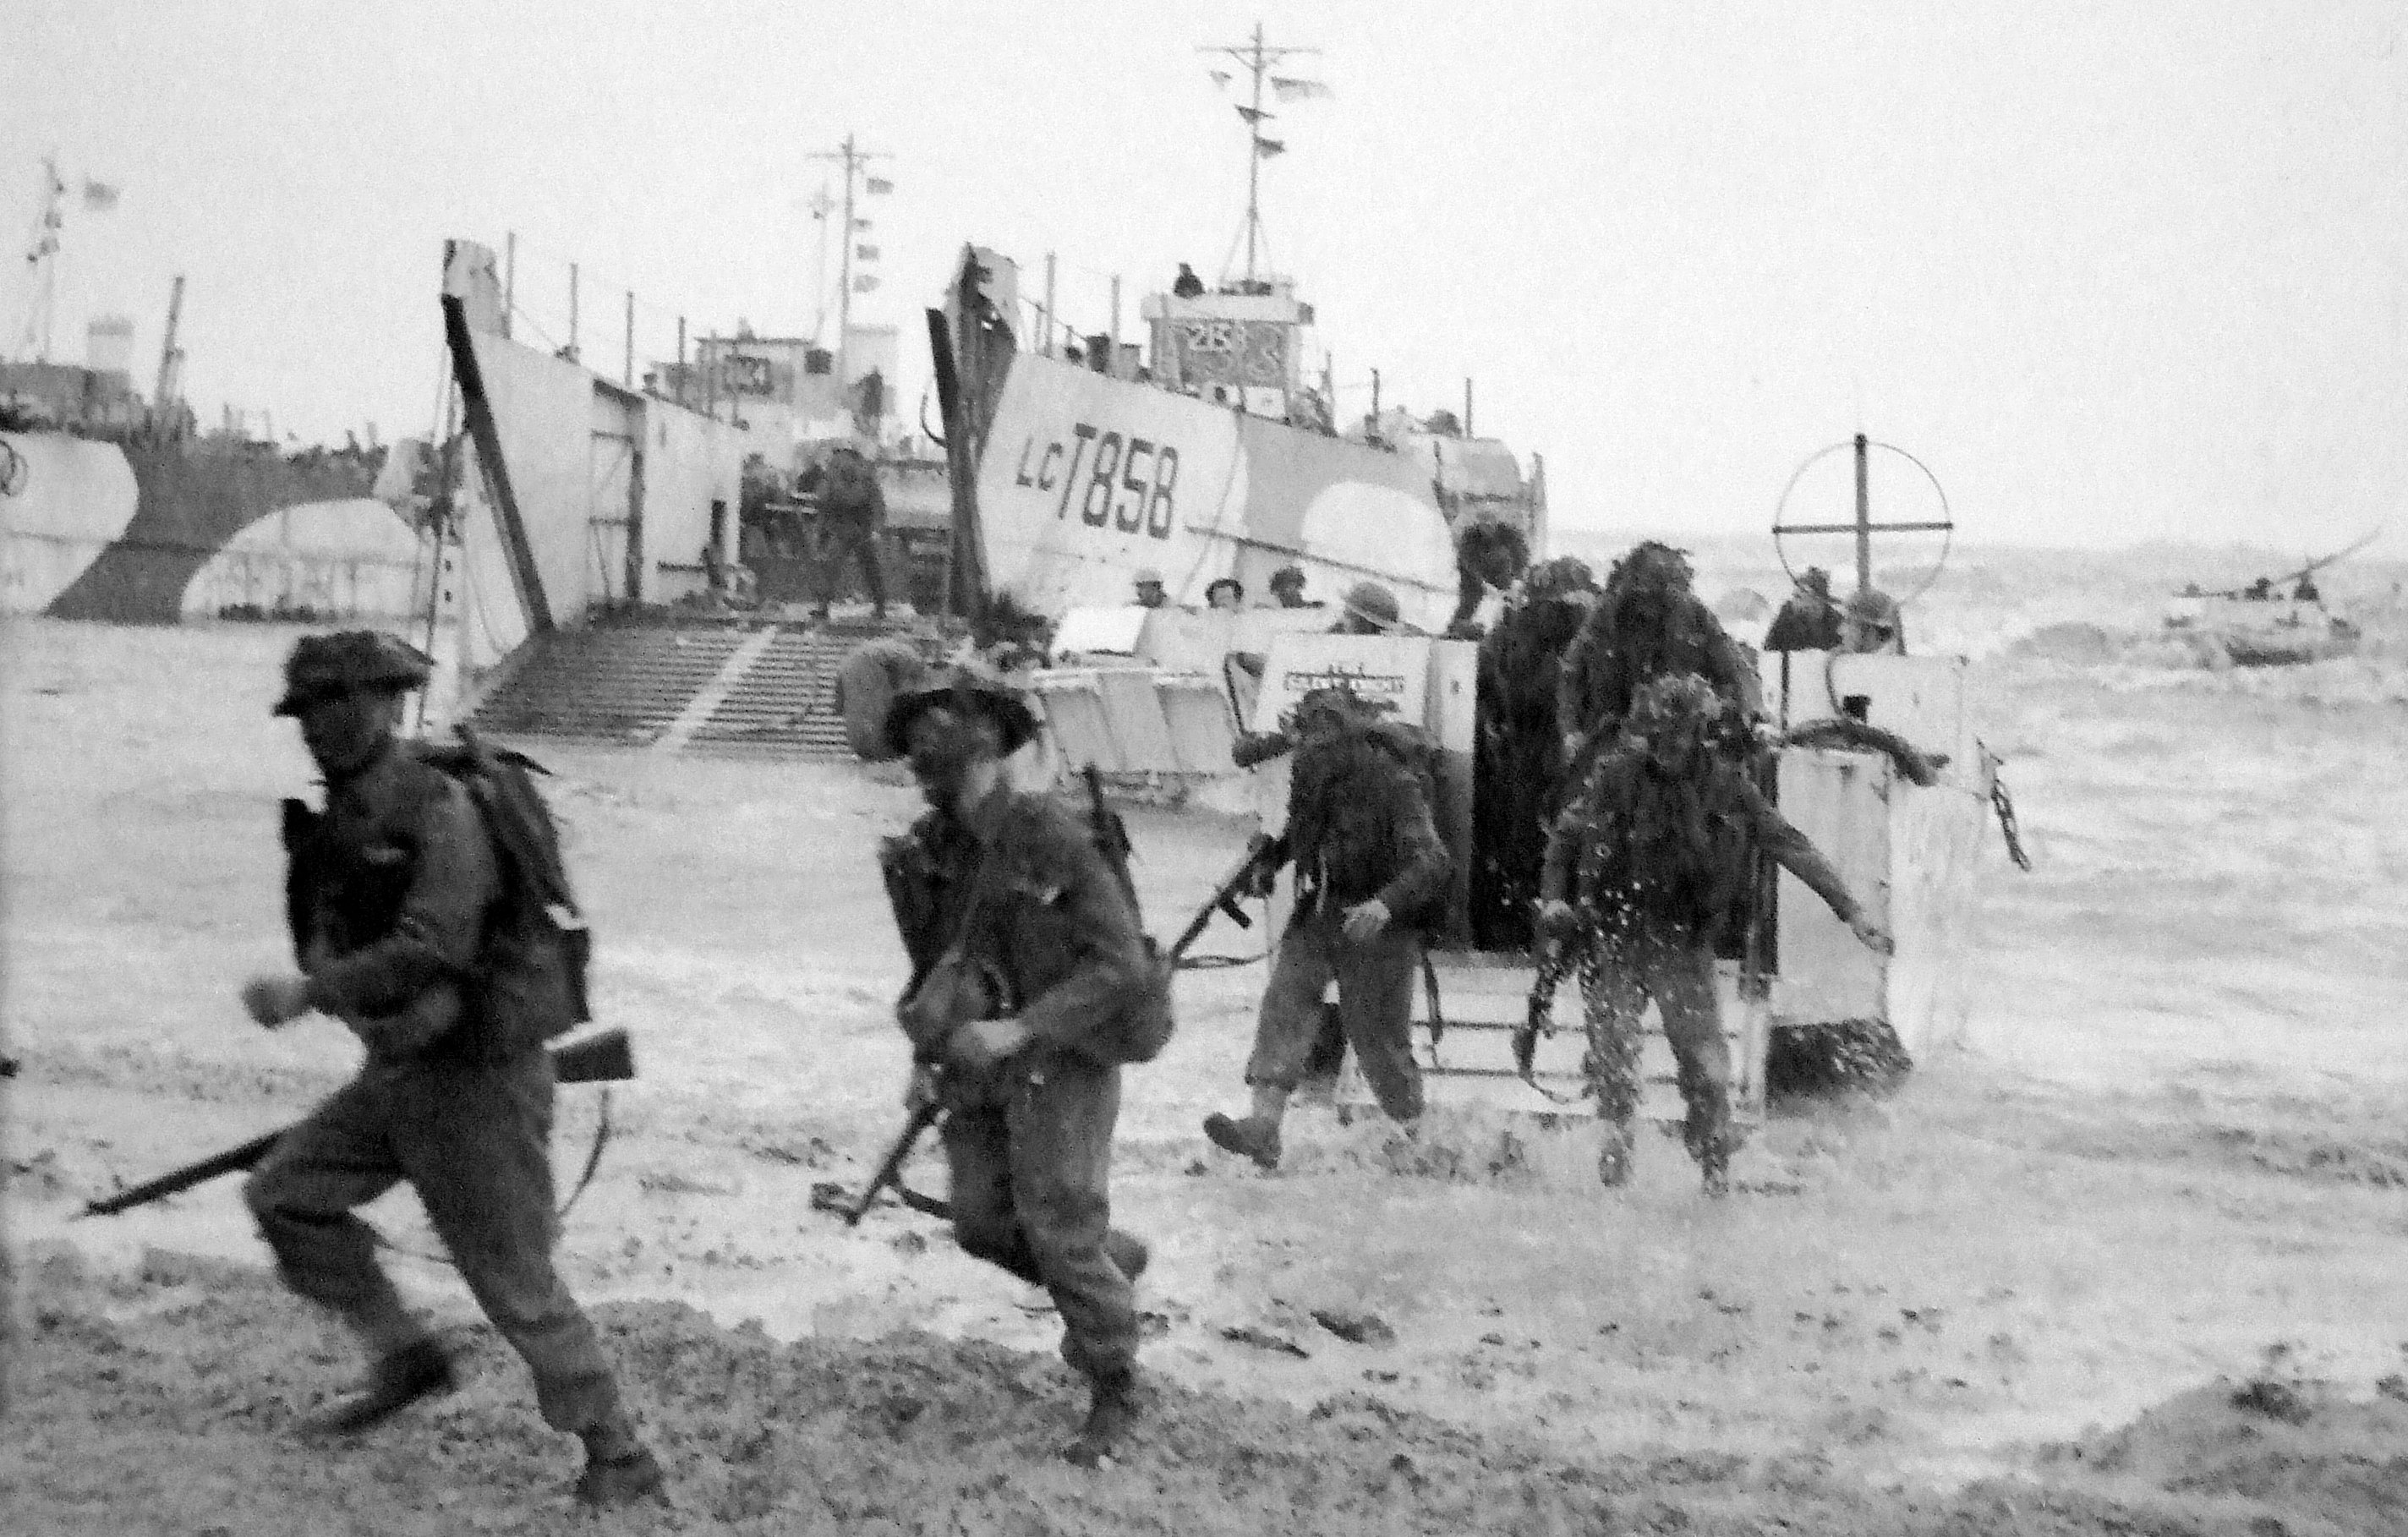 troops storming the beaches of normandy